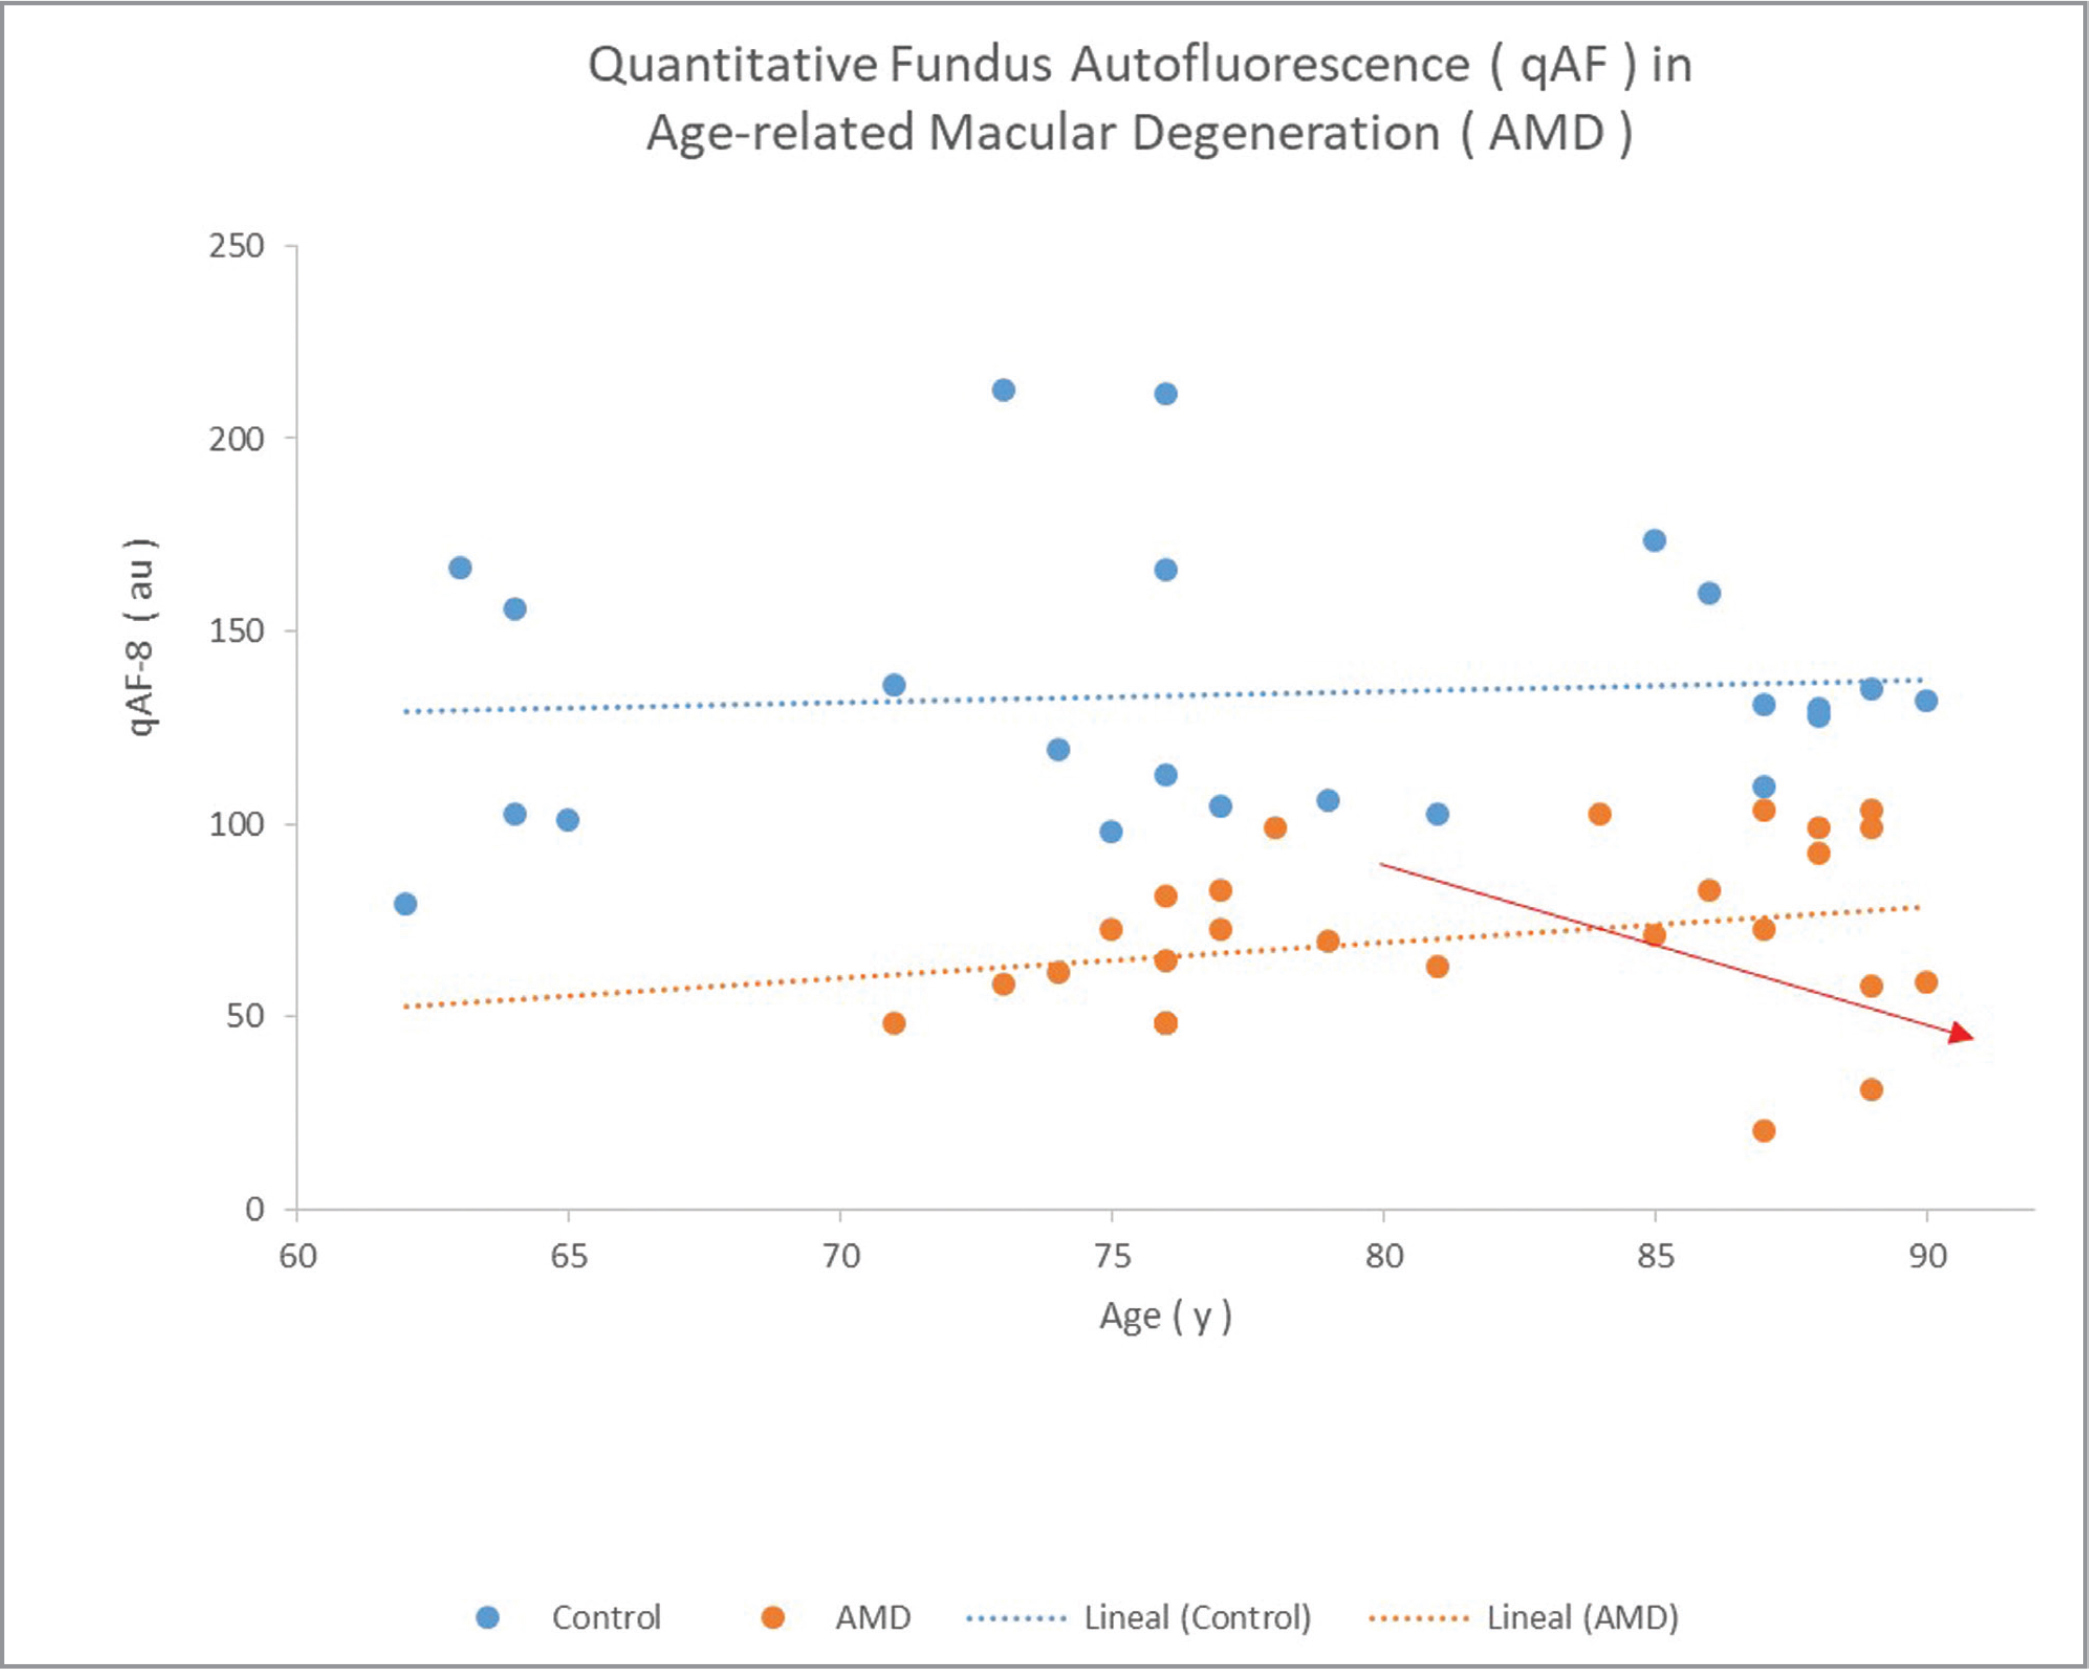 Quantitative fundus autofluorescence (qAF)-8 for control versus patients with age-related macular degeneration (AMD). A downward trend is also noticeable after the age of 80 in patients with AMD (red arrow).